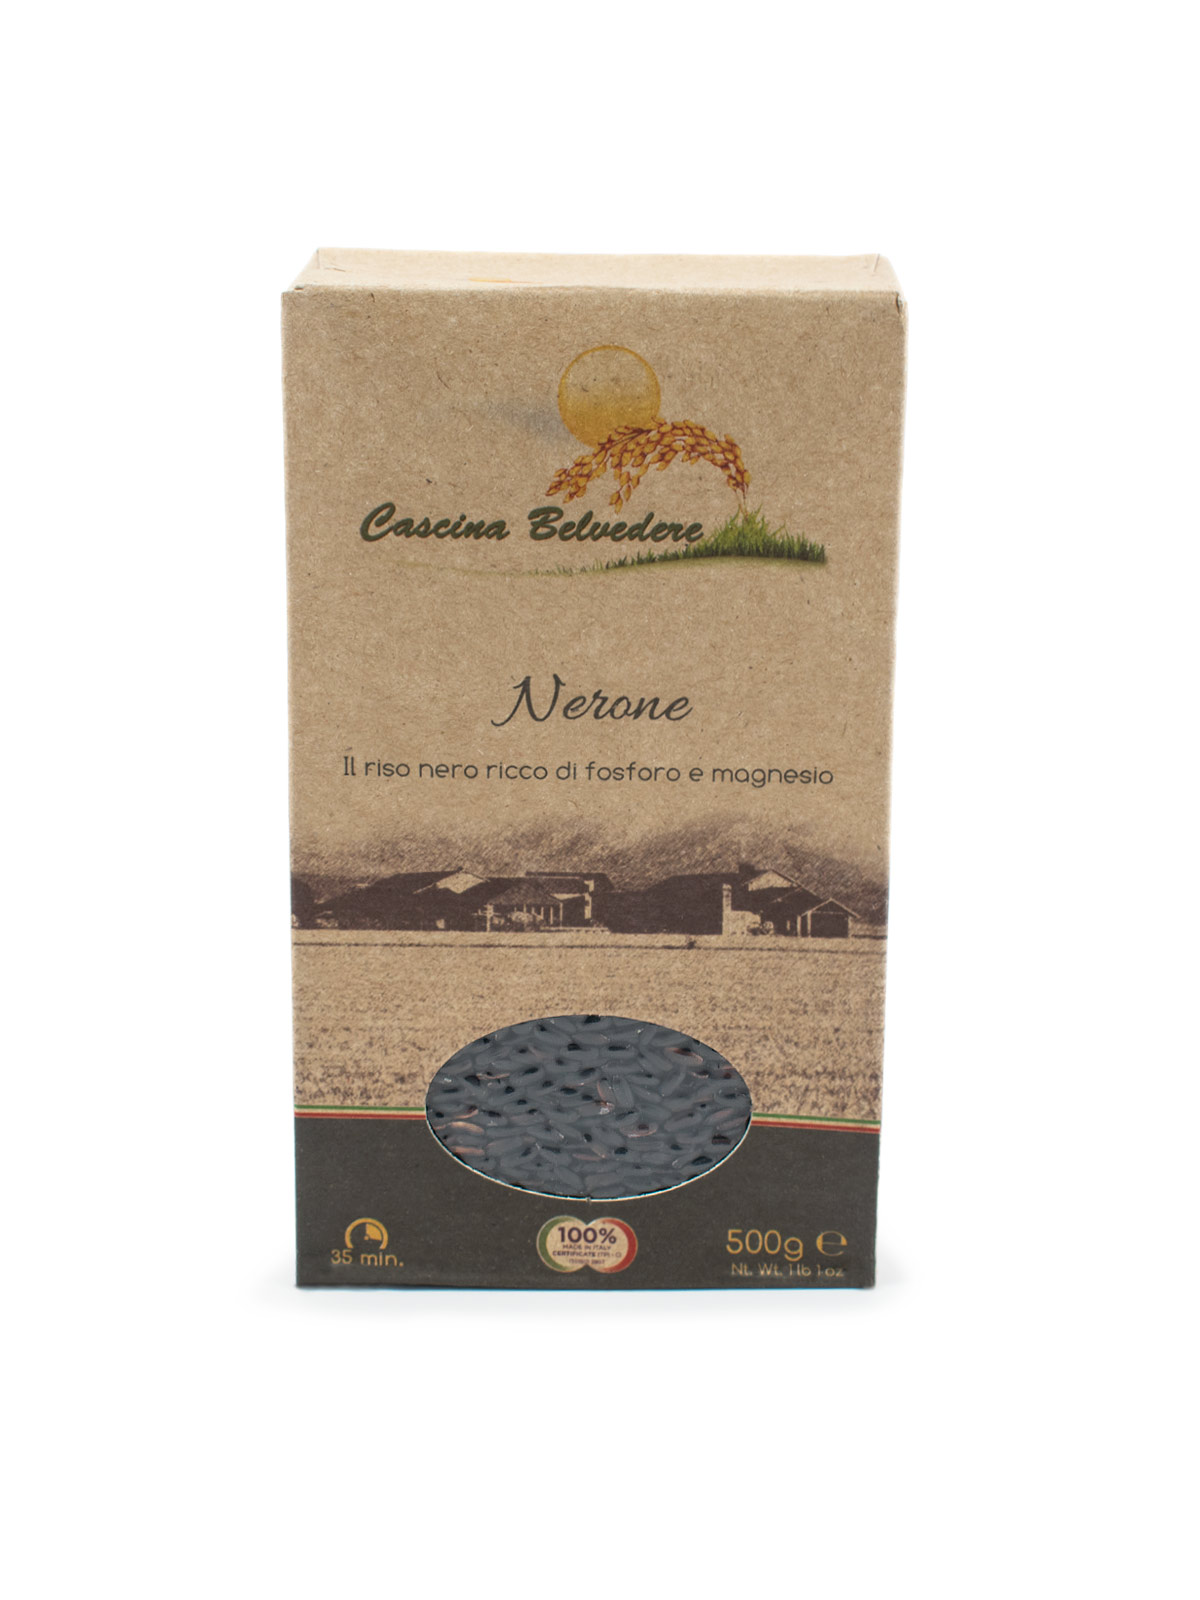 Organic Black Rice - Pastas, Rice, and Grains - Buon'Italia